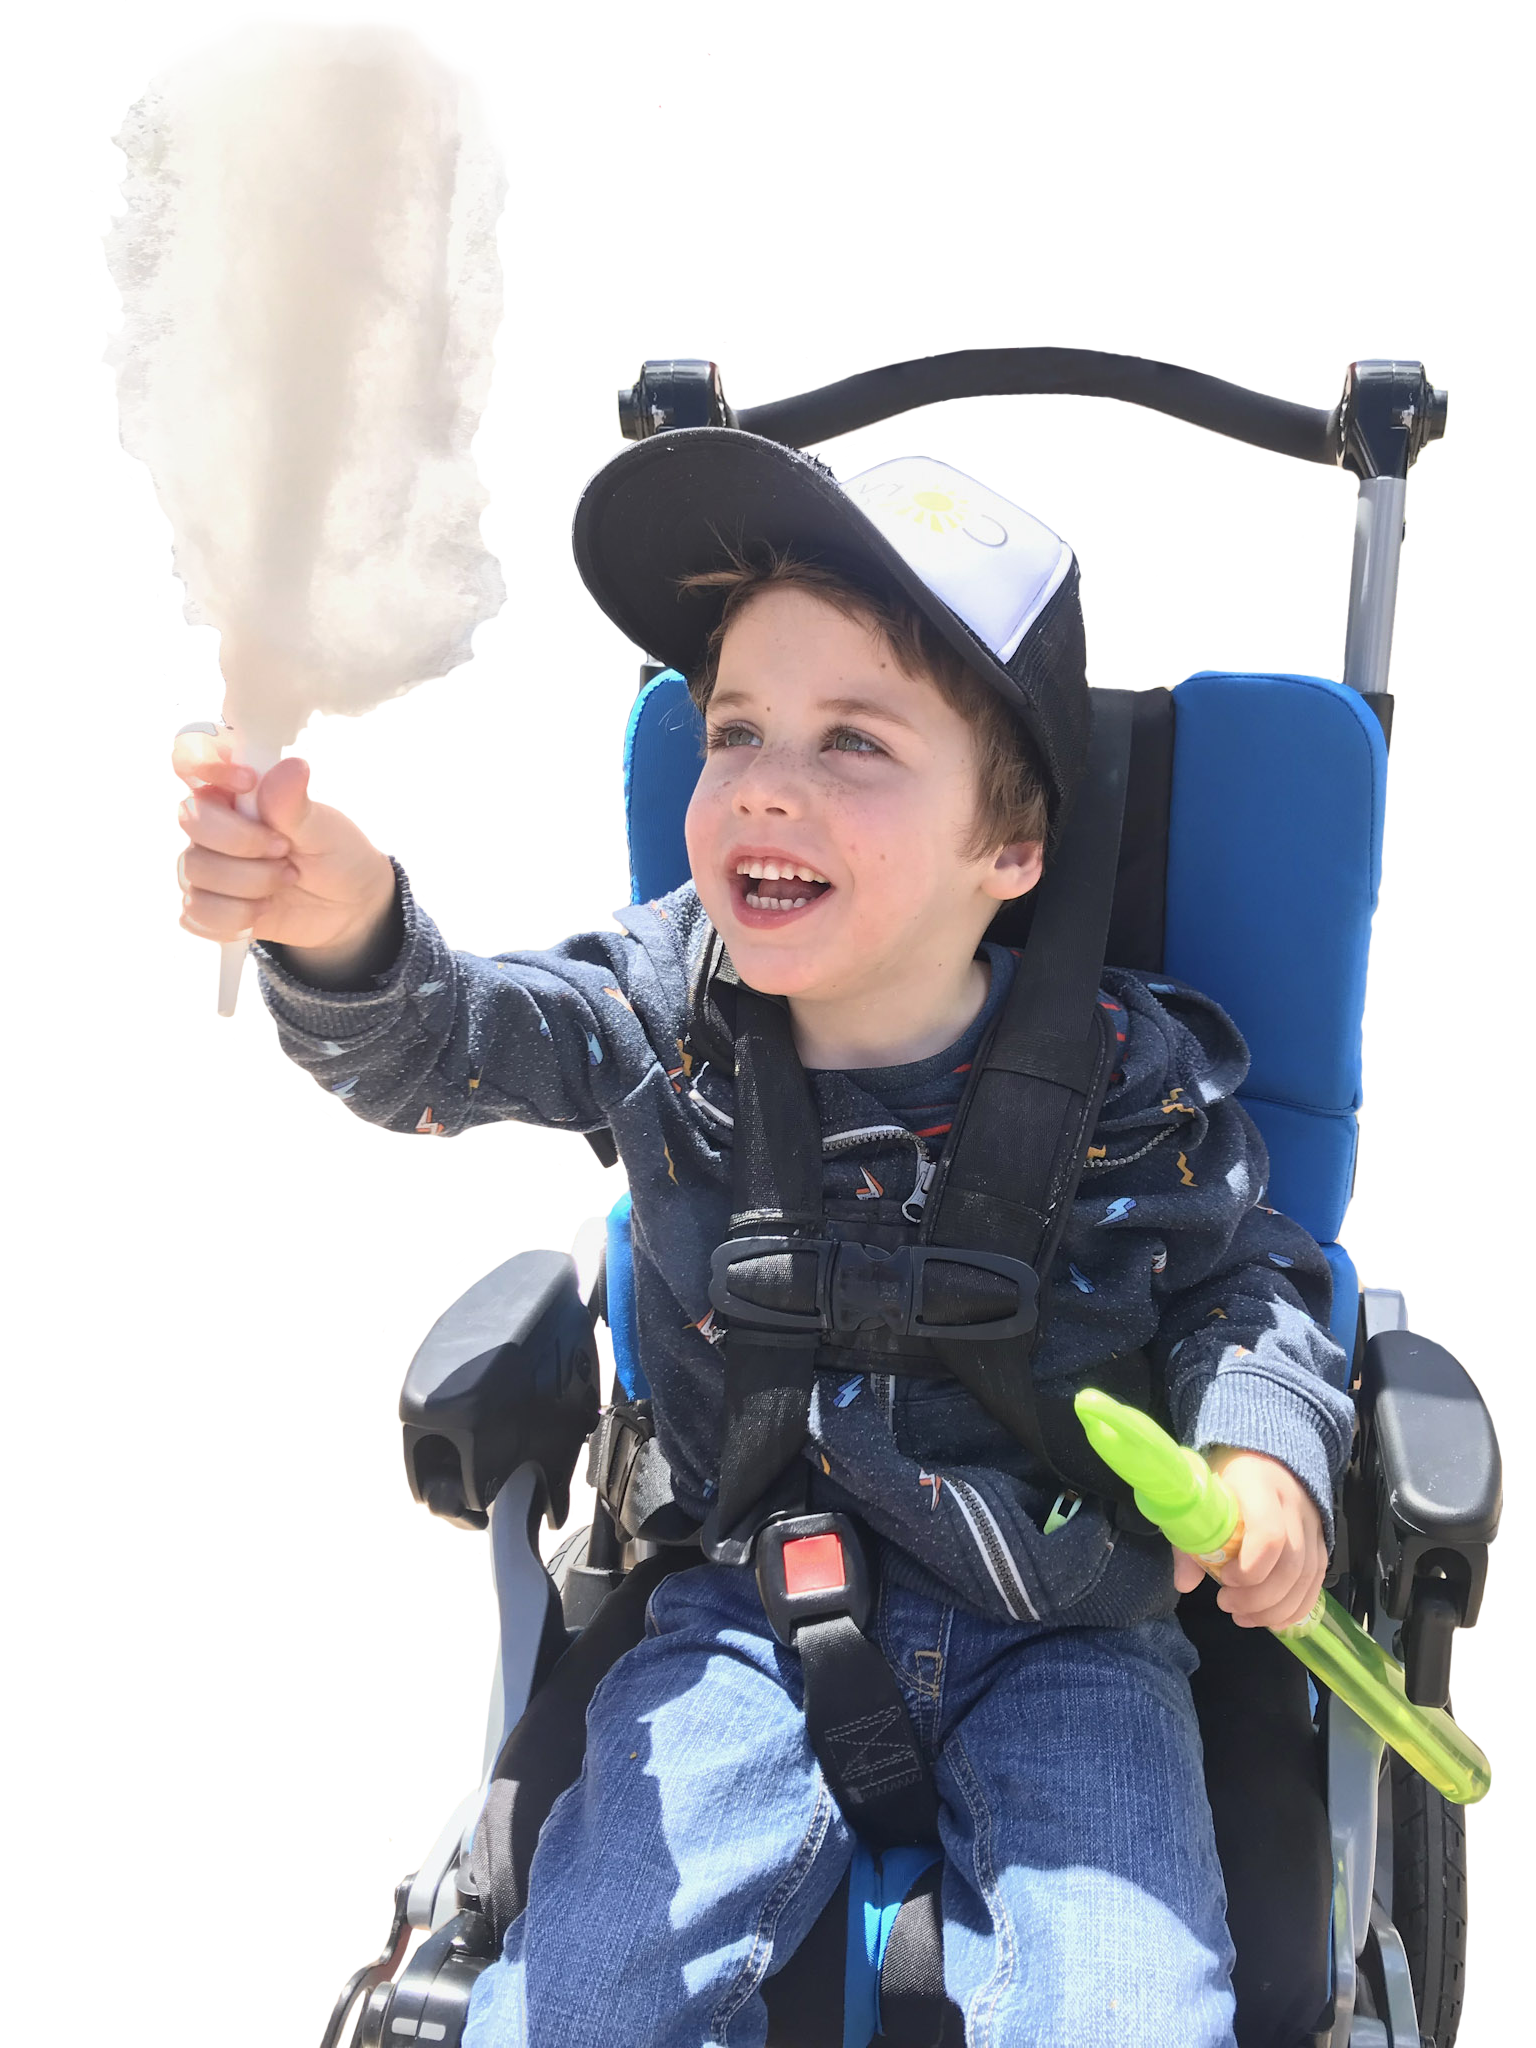 OUR MISSION - Rays for Rare was founded in 2017. Here is the story behind the cause. Our son Corwyn was born with a rare brain malformation, he was medically fragile with many health issues. While in the hospital we found that charities visit, support, bring special visitors and comfort items. When we moved to care at home we found we were alone, no charities service families in their home. After our son passed away at home in November 2016 we decided this is a cause we would like to bring light to.Learn More